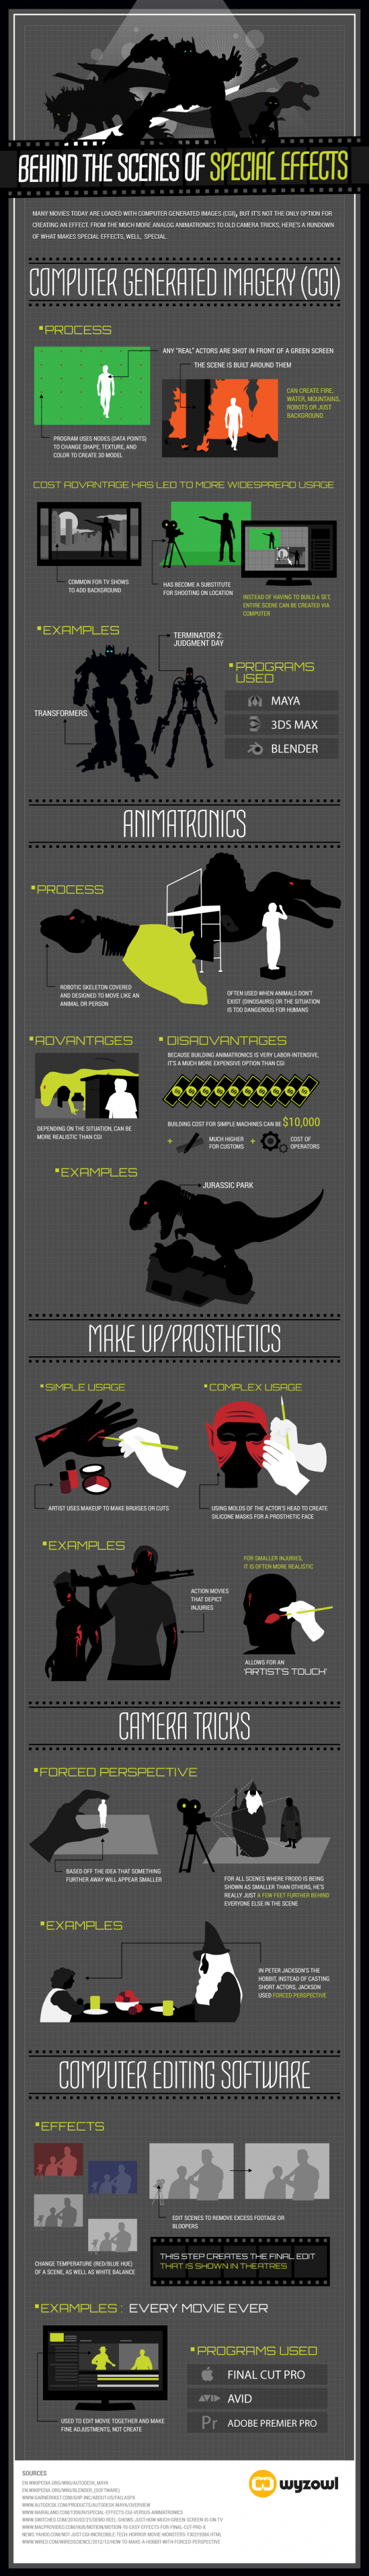 behind-the-scenes-of-special-effects-infographic